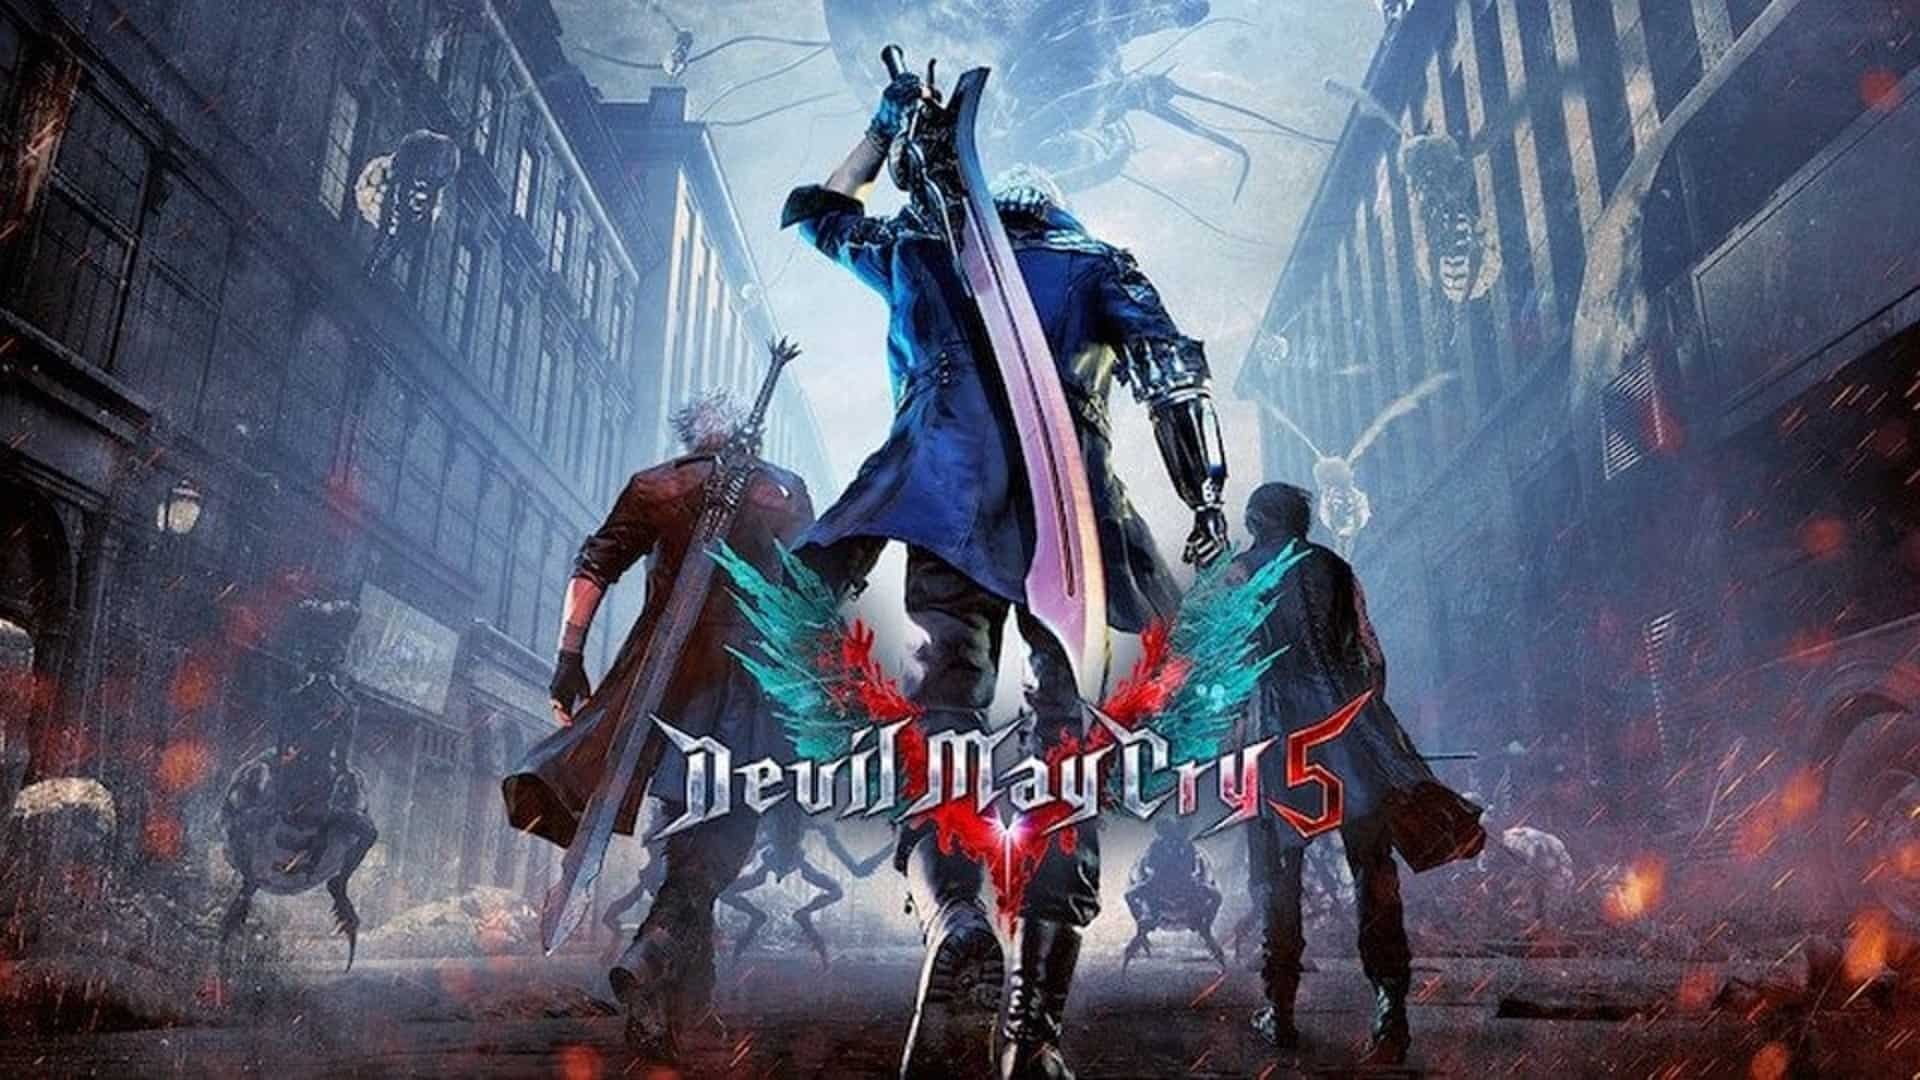 TRAILER: The SSStylish Devil May Cry 5 Releases Globally Today